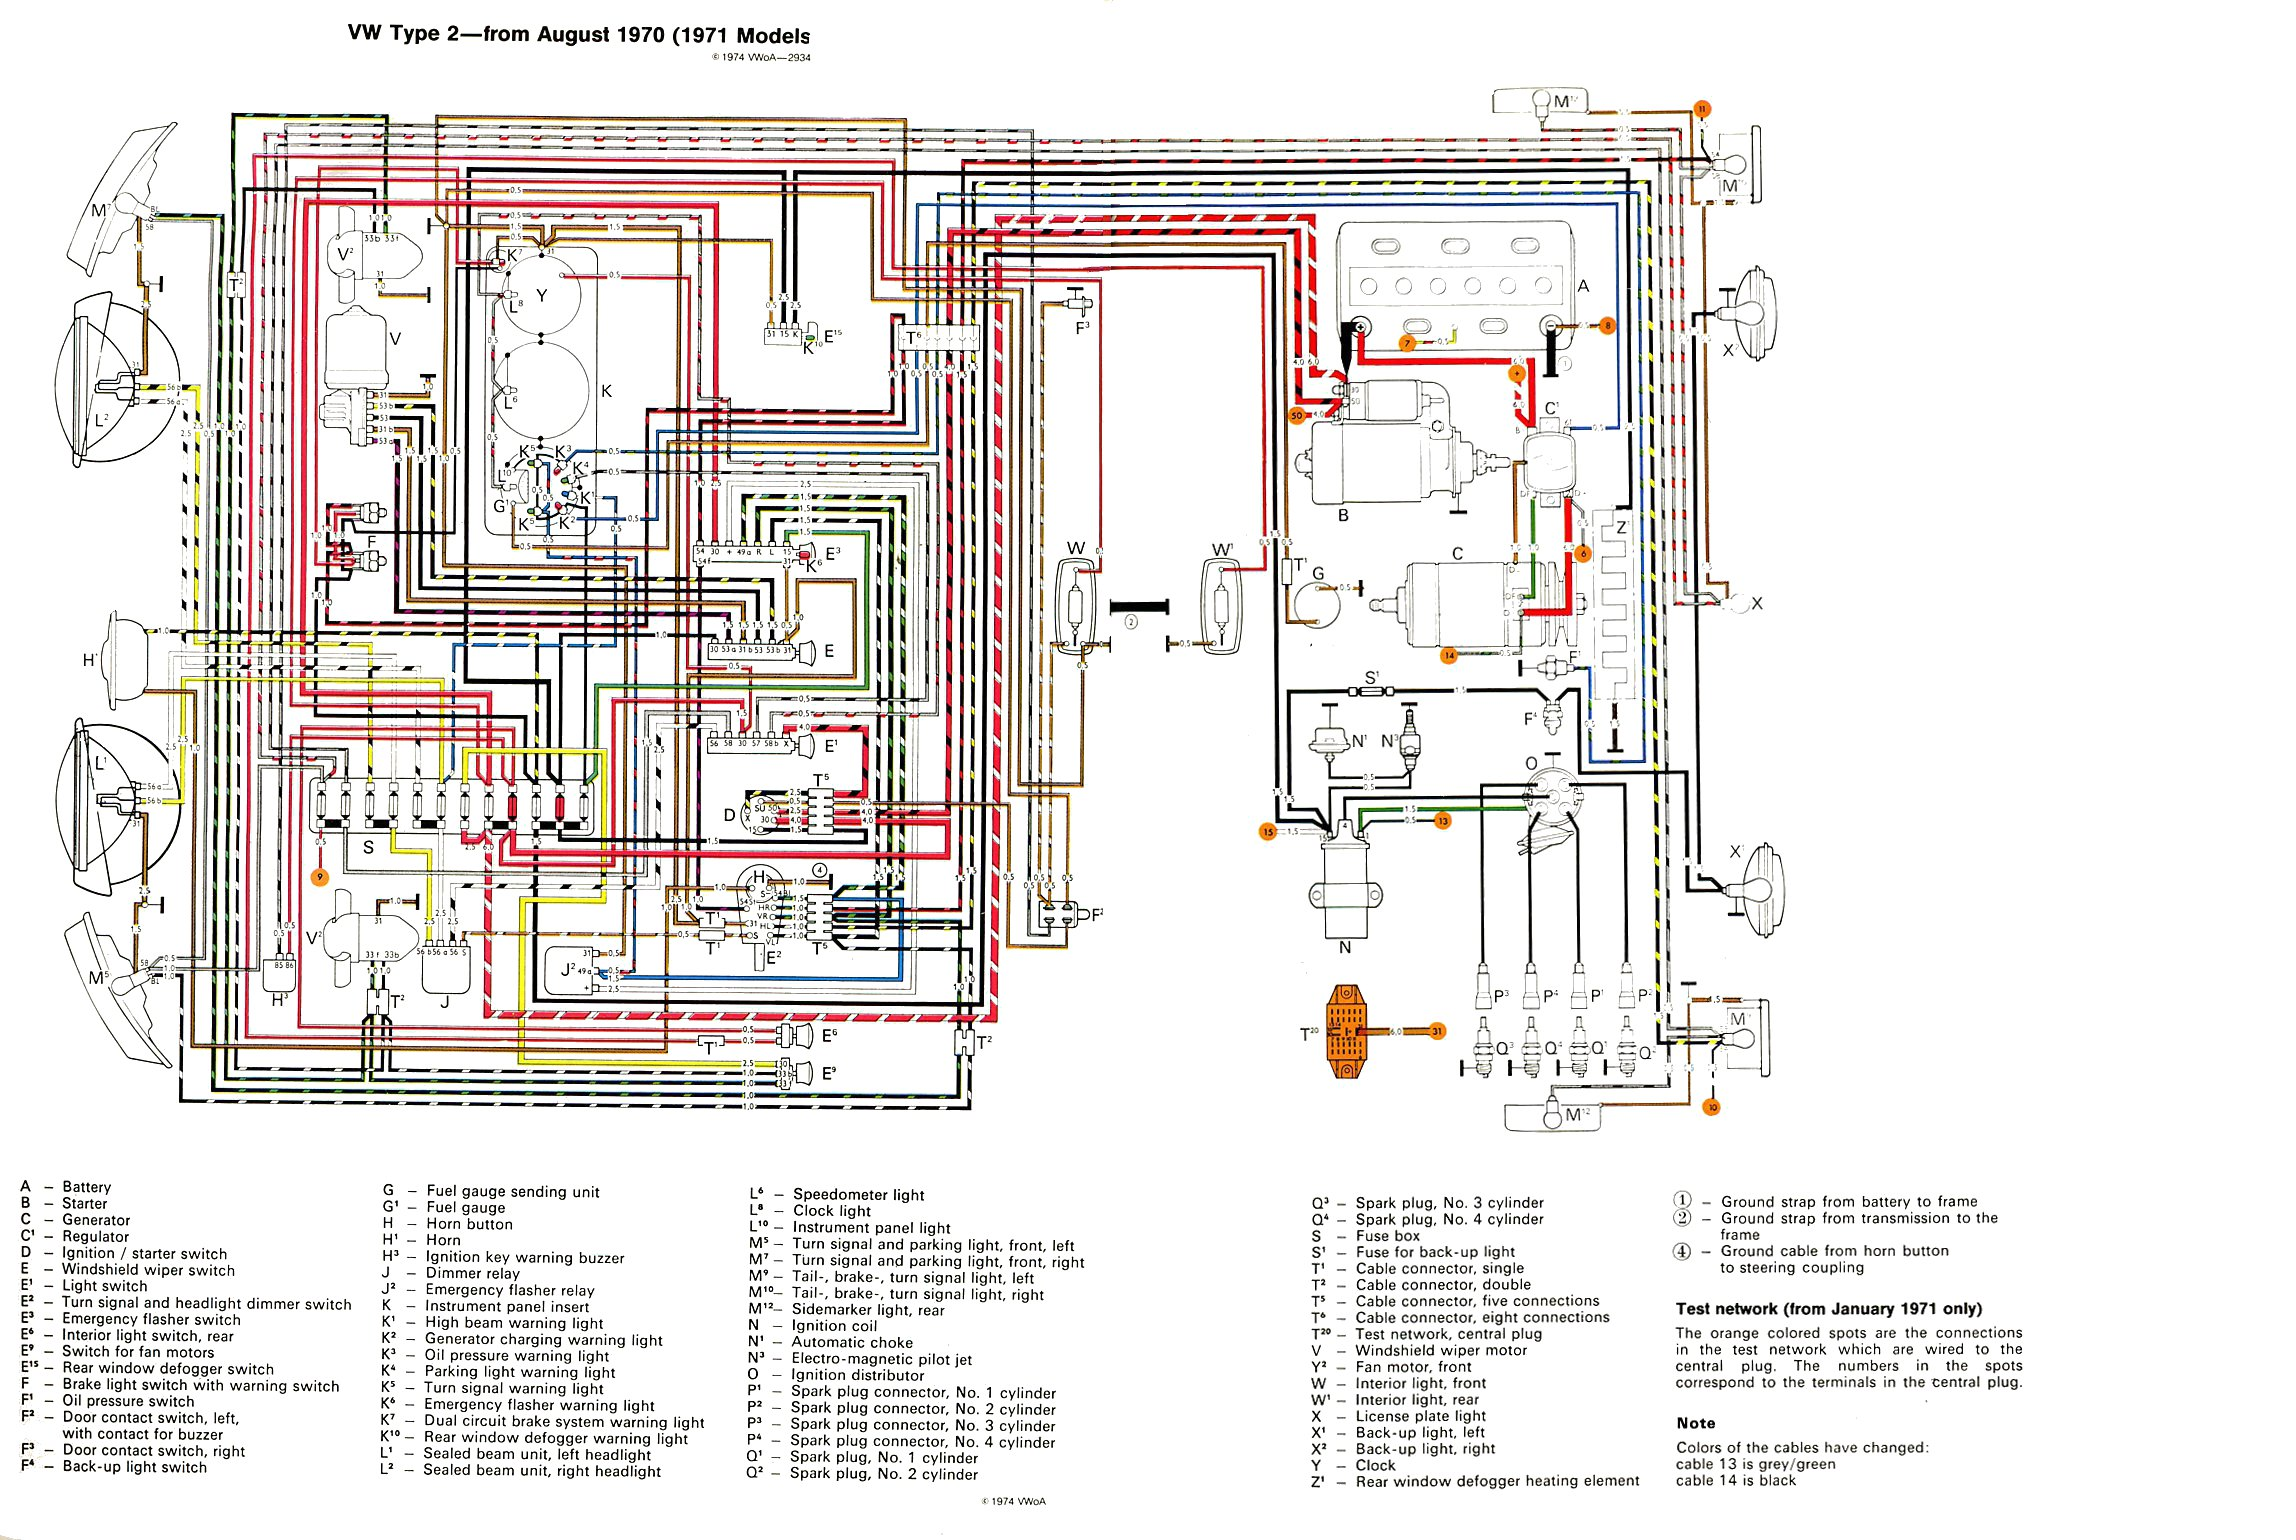 baybus_71 thesamba com type 2 wiring diagrams g body fuse box diagram at nearapp.co